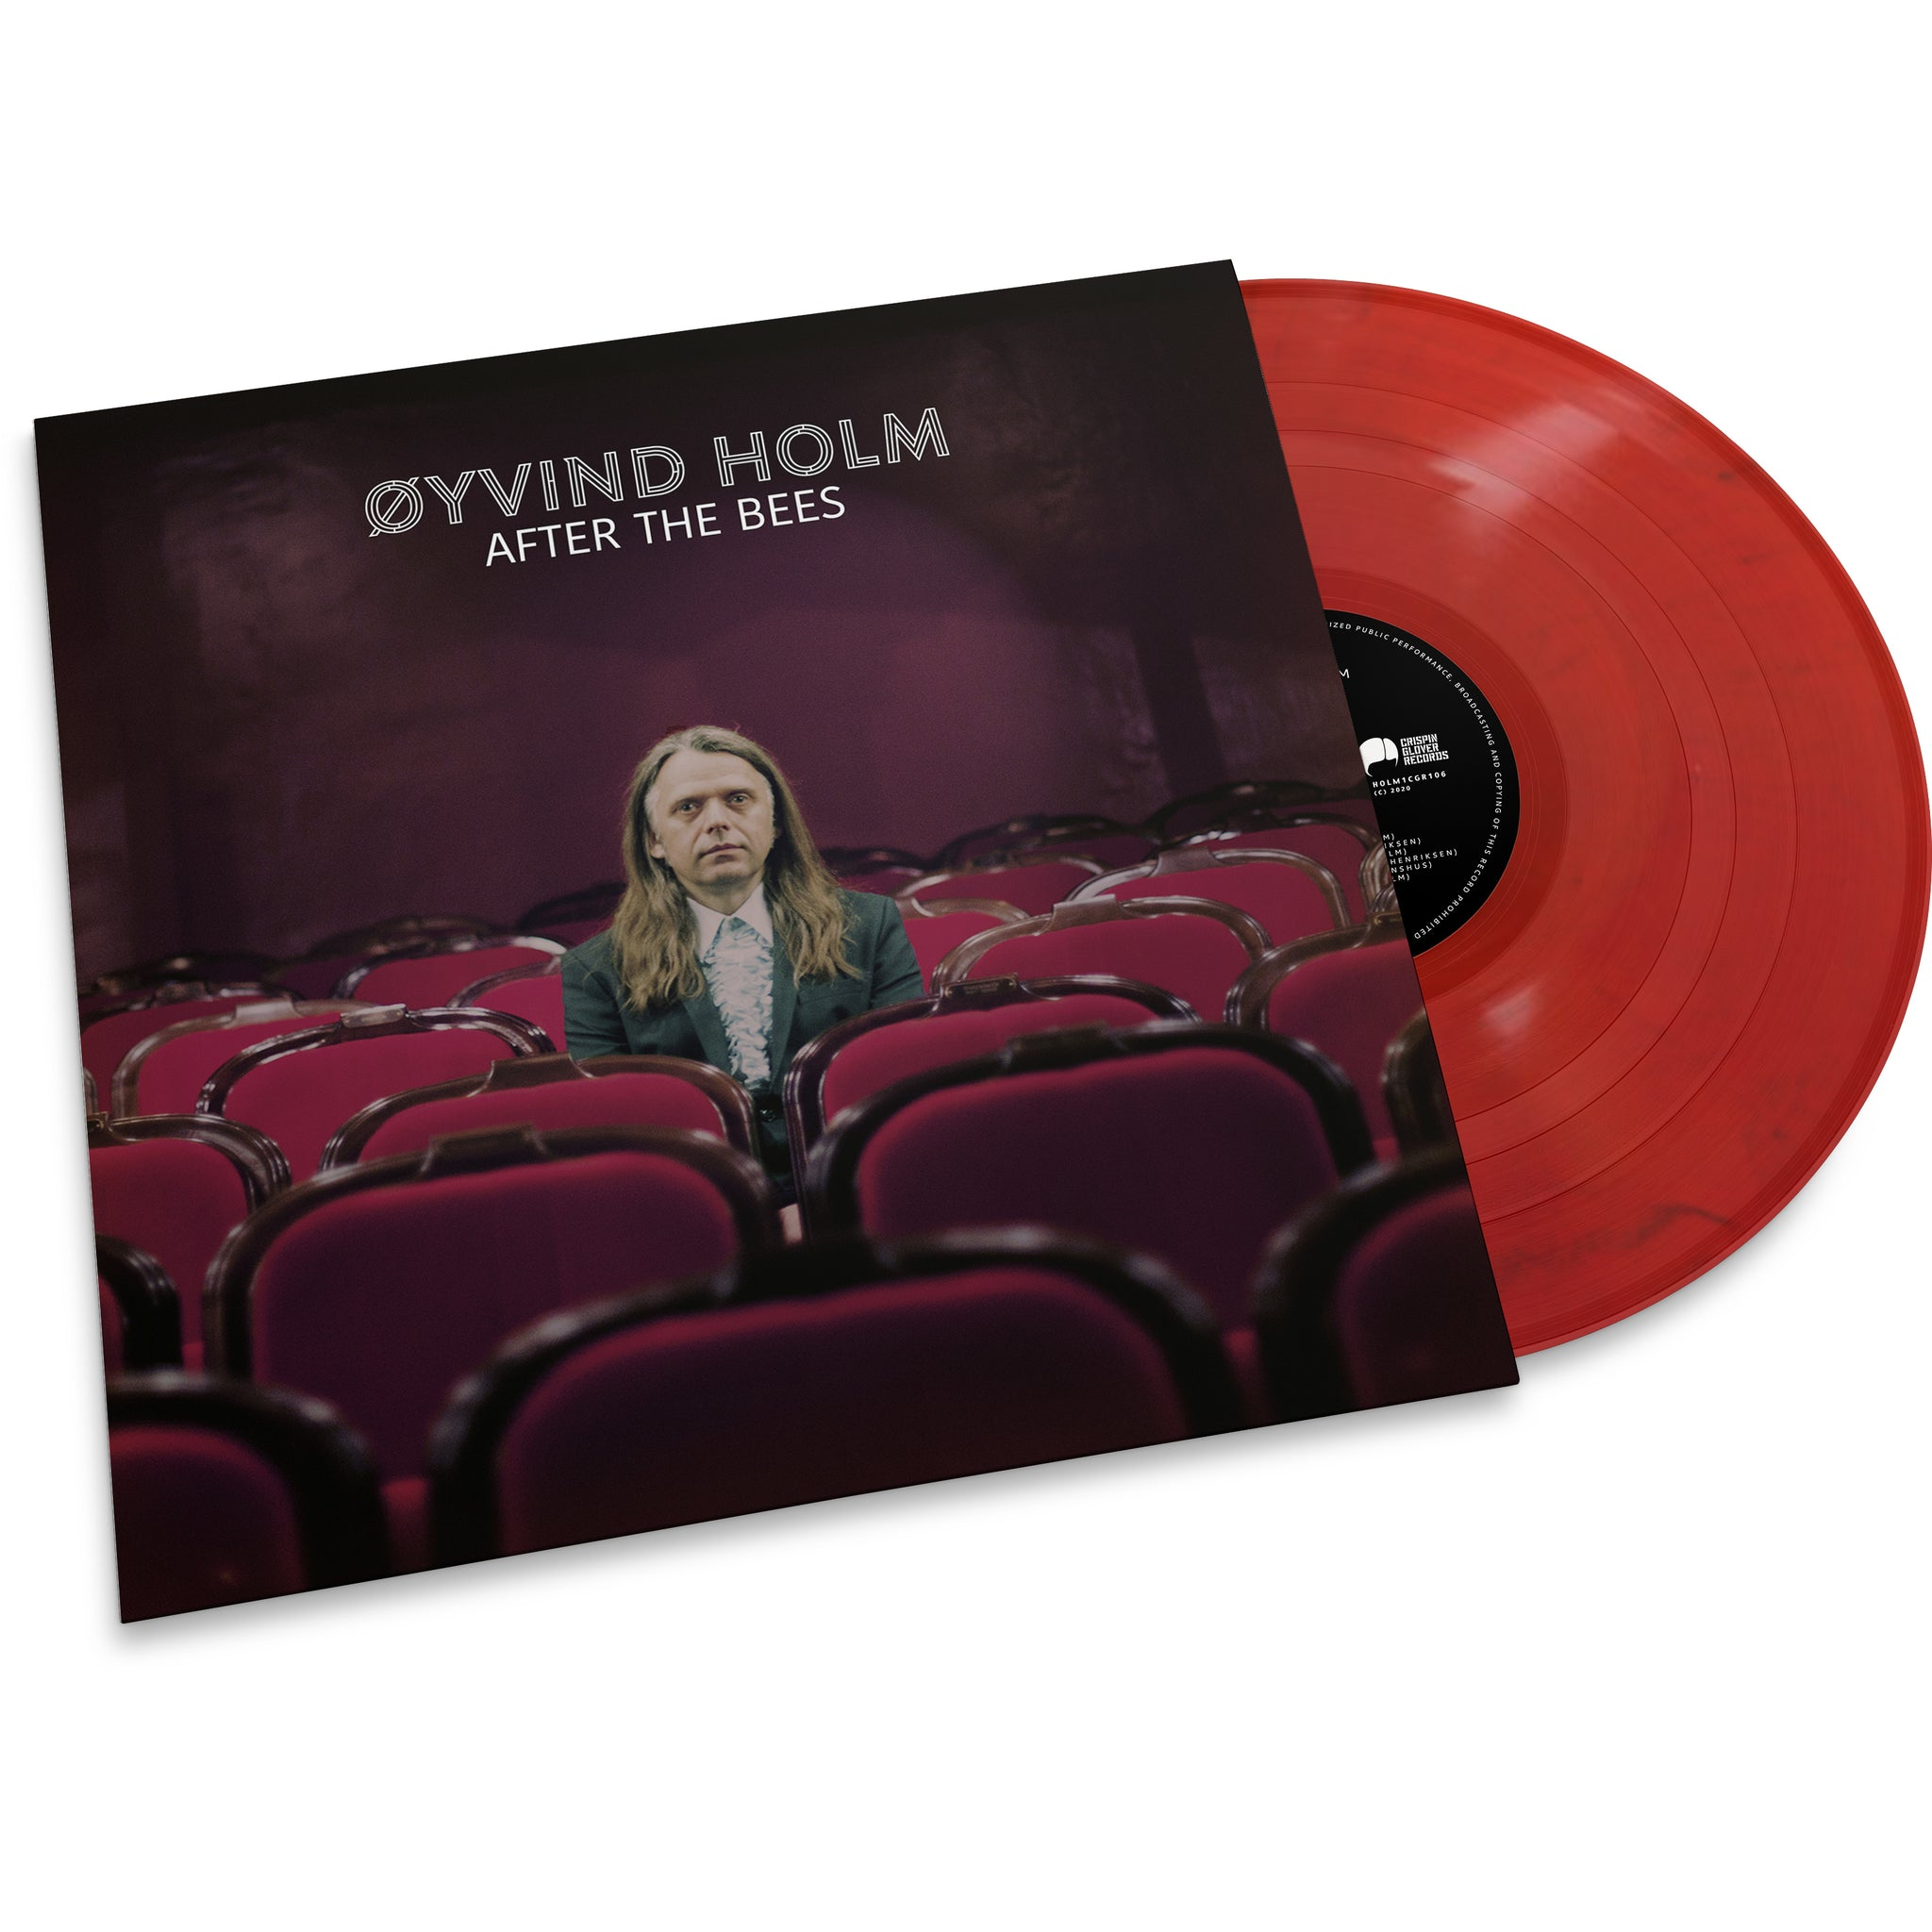 "Øyvind Holm - After The Bees (LTD Transparent red mixed with black + bonus 7"") 300 copies only."